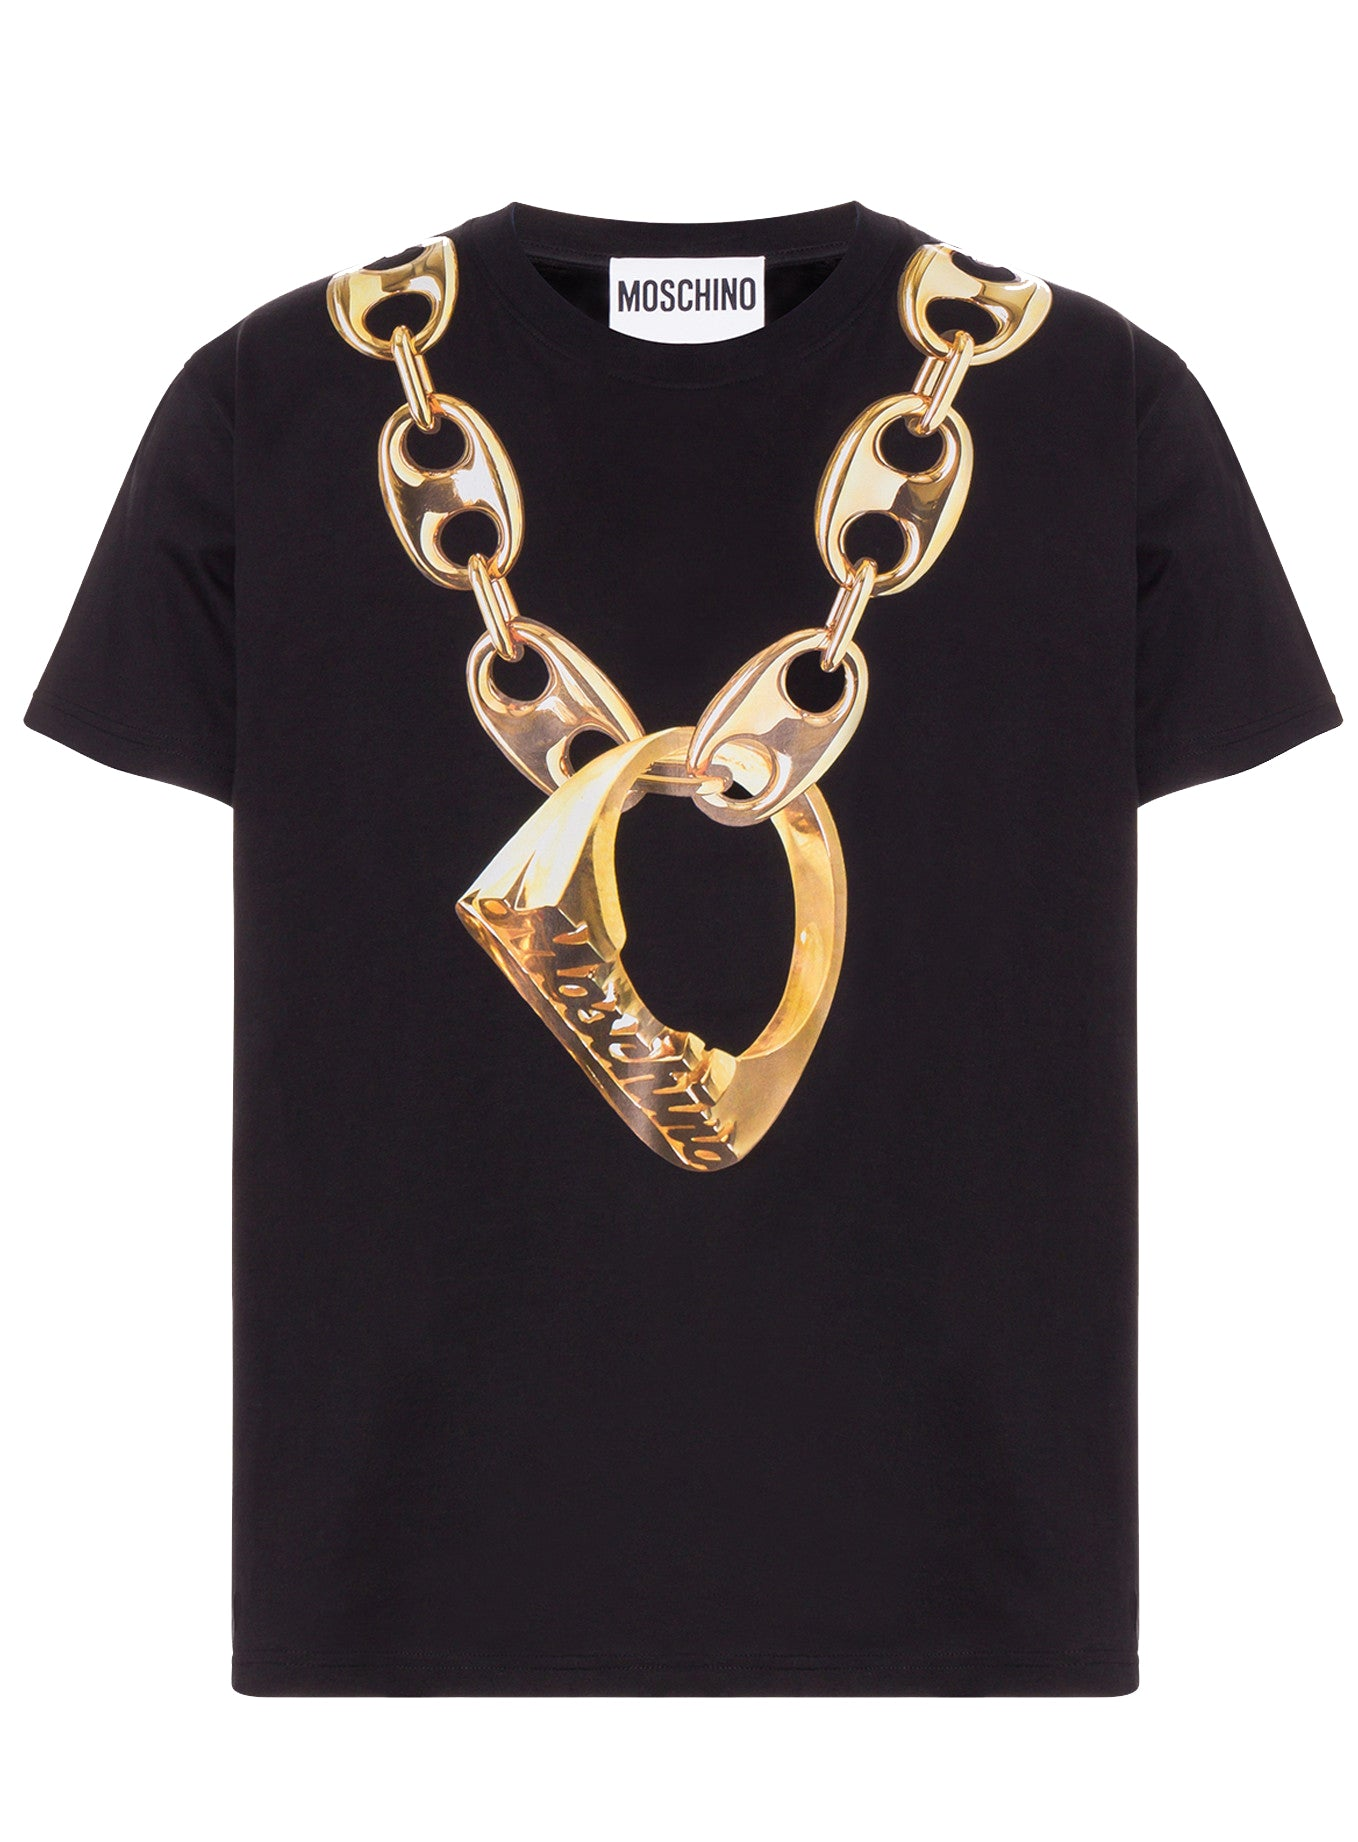 Moschino Chain With Ring Short Sleeve Tee